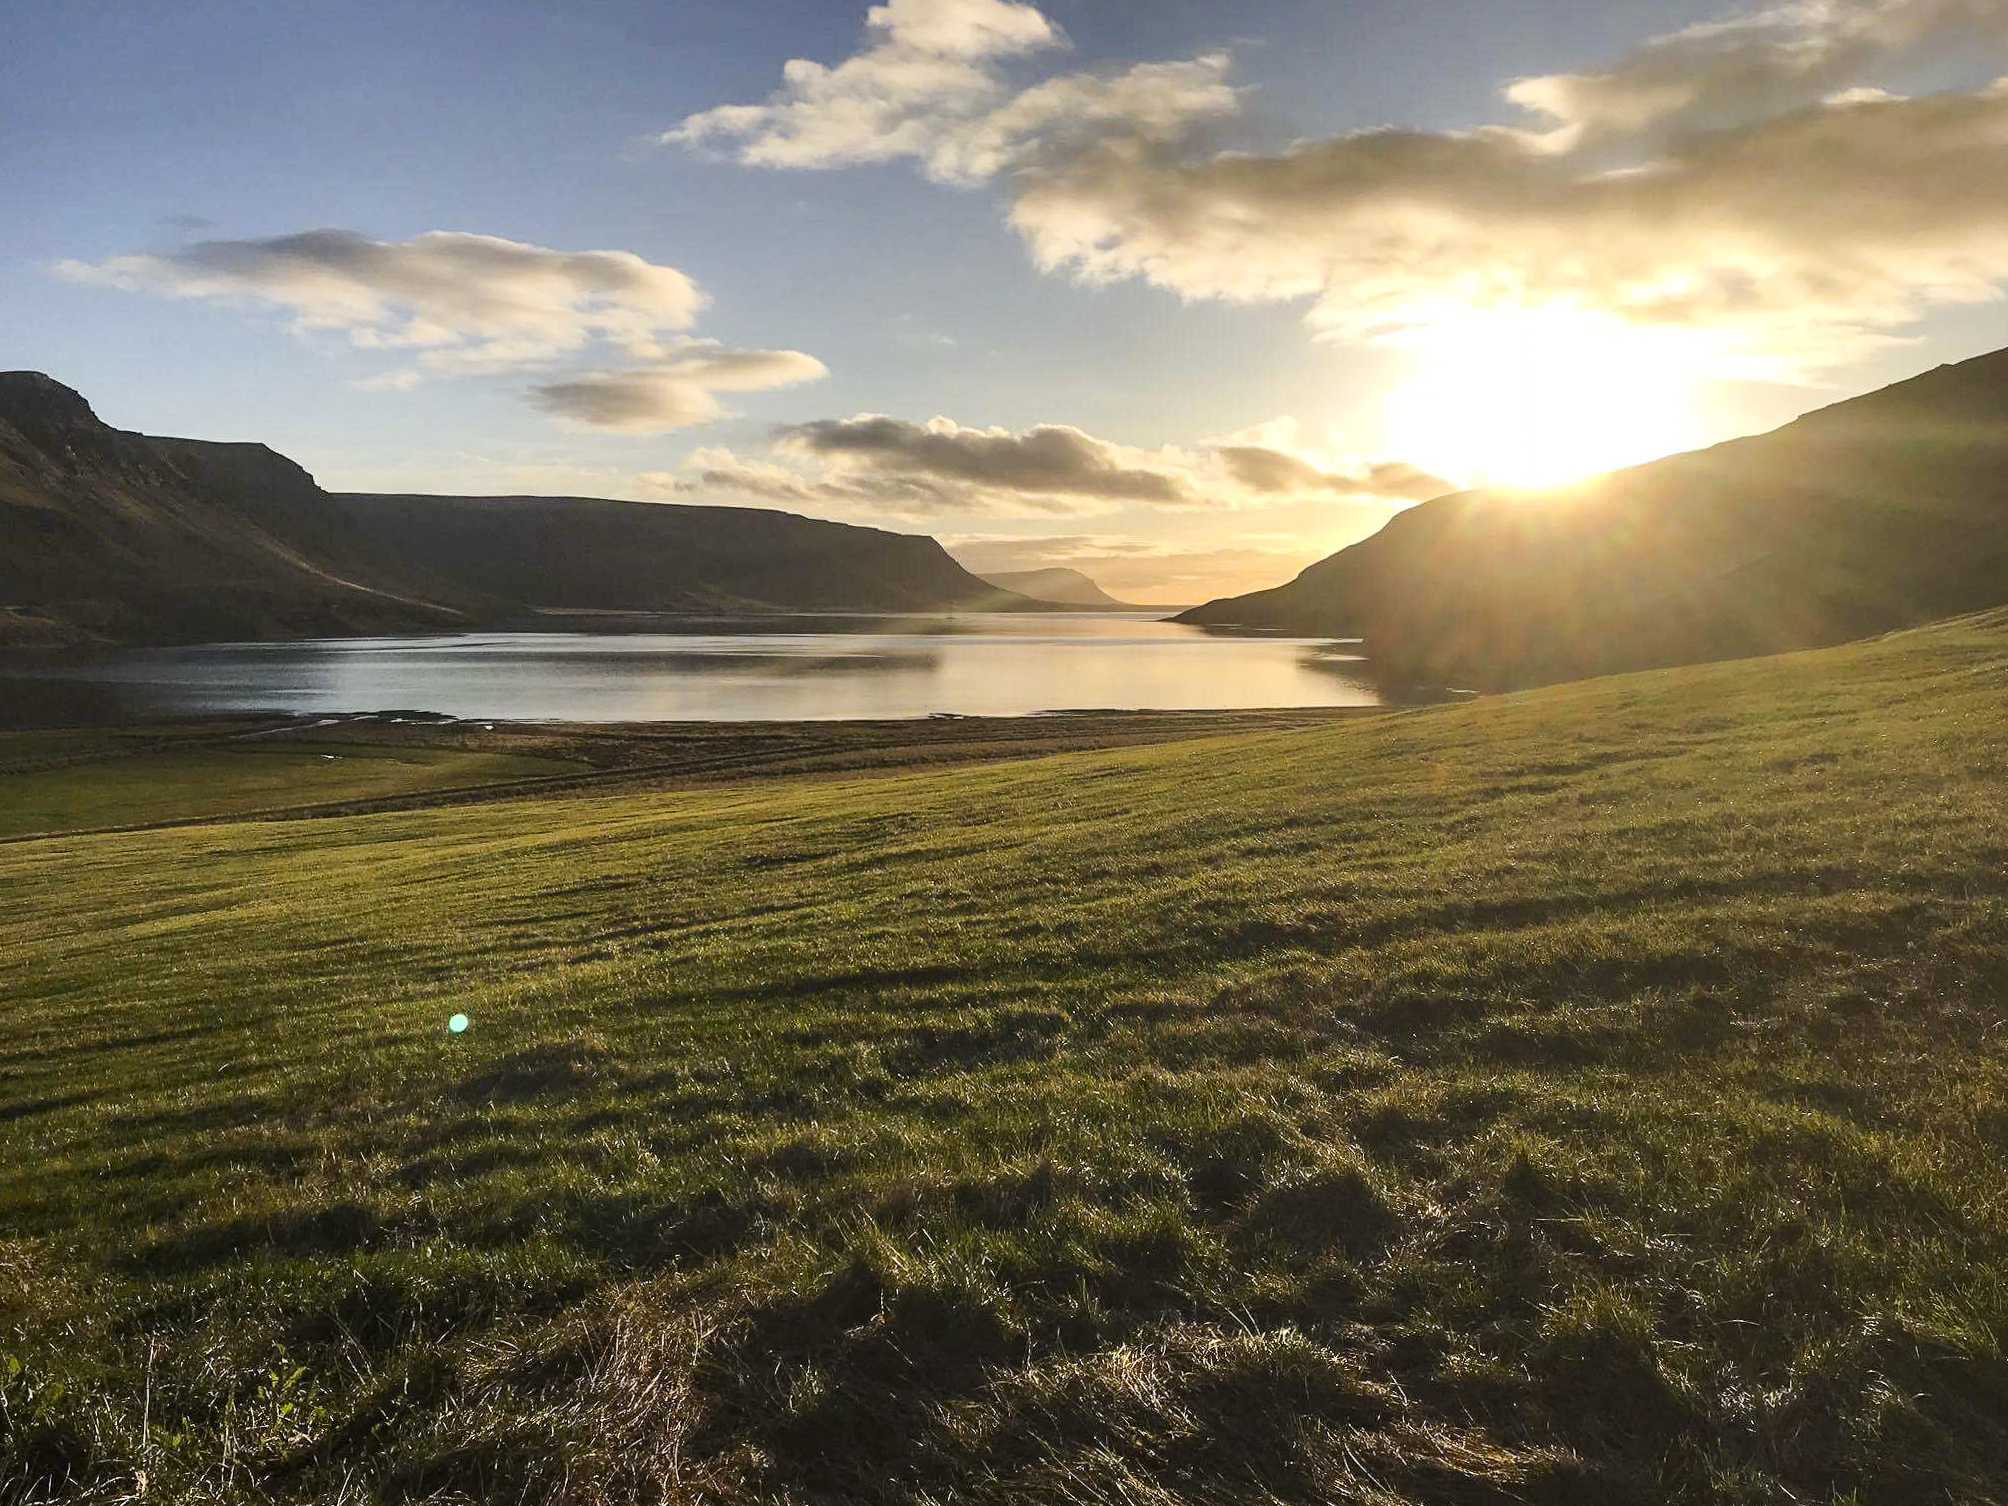 Apply for 2020 - GilsfjordurArts - a remote artist residency in the Westfjords, Iceland2020 applications now open:please click the application link: https://forms.gle/SvjvyYTUdRSCCqM4A